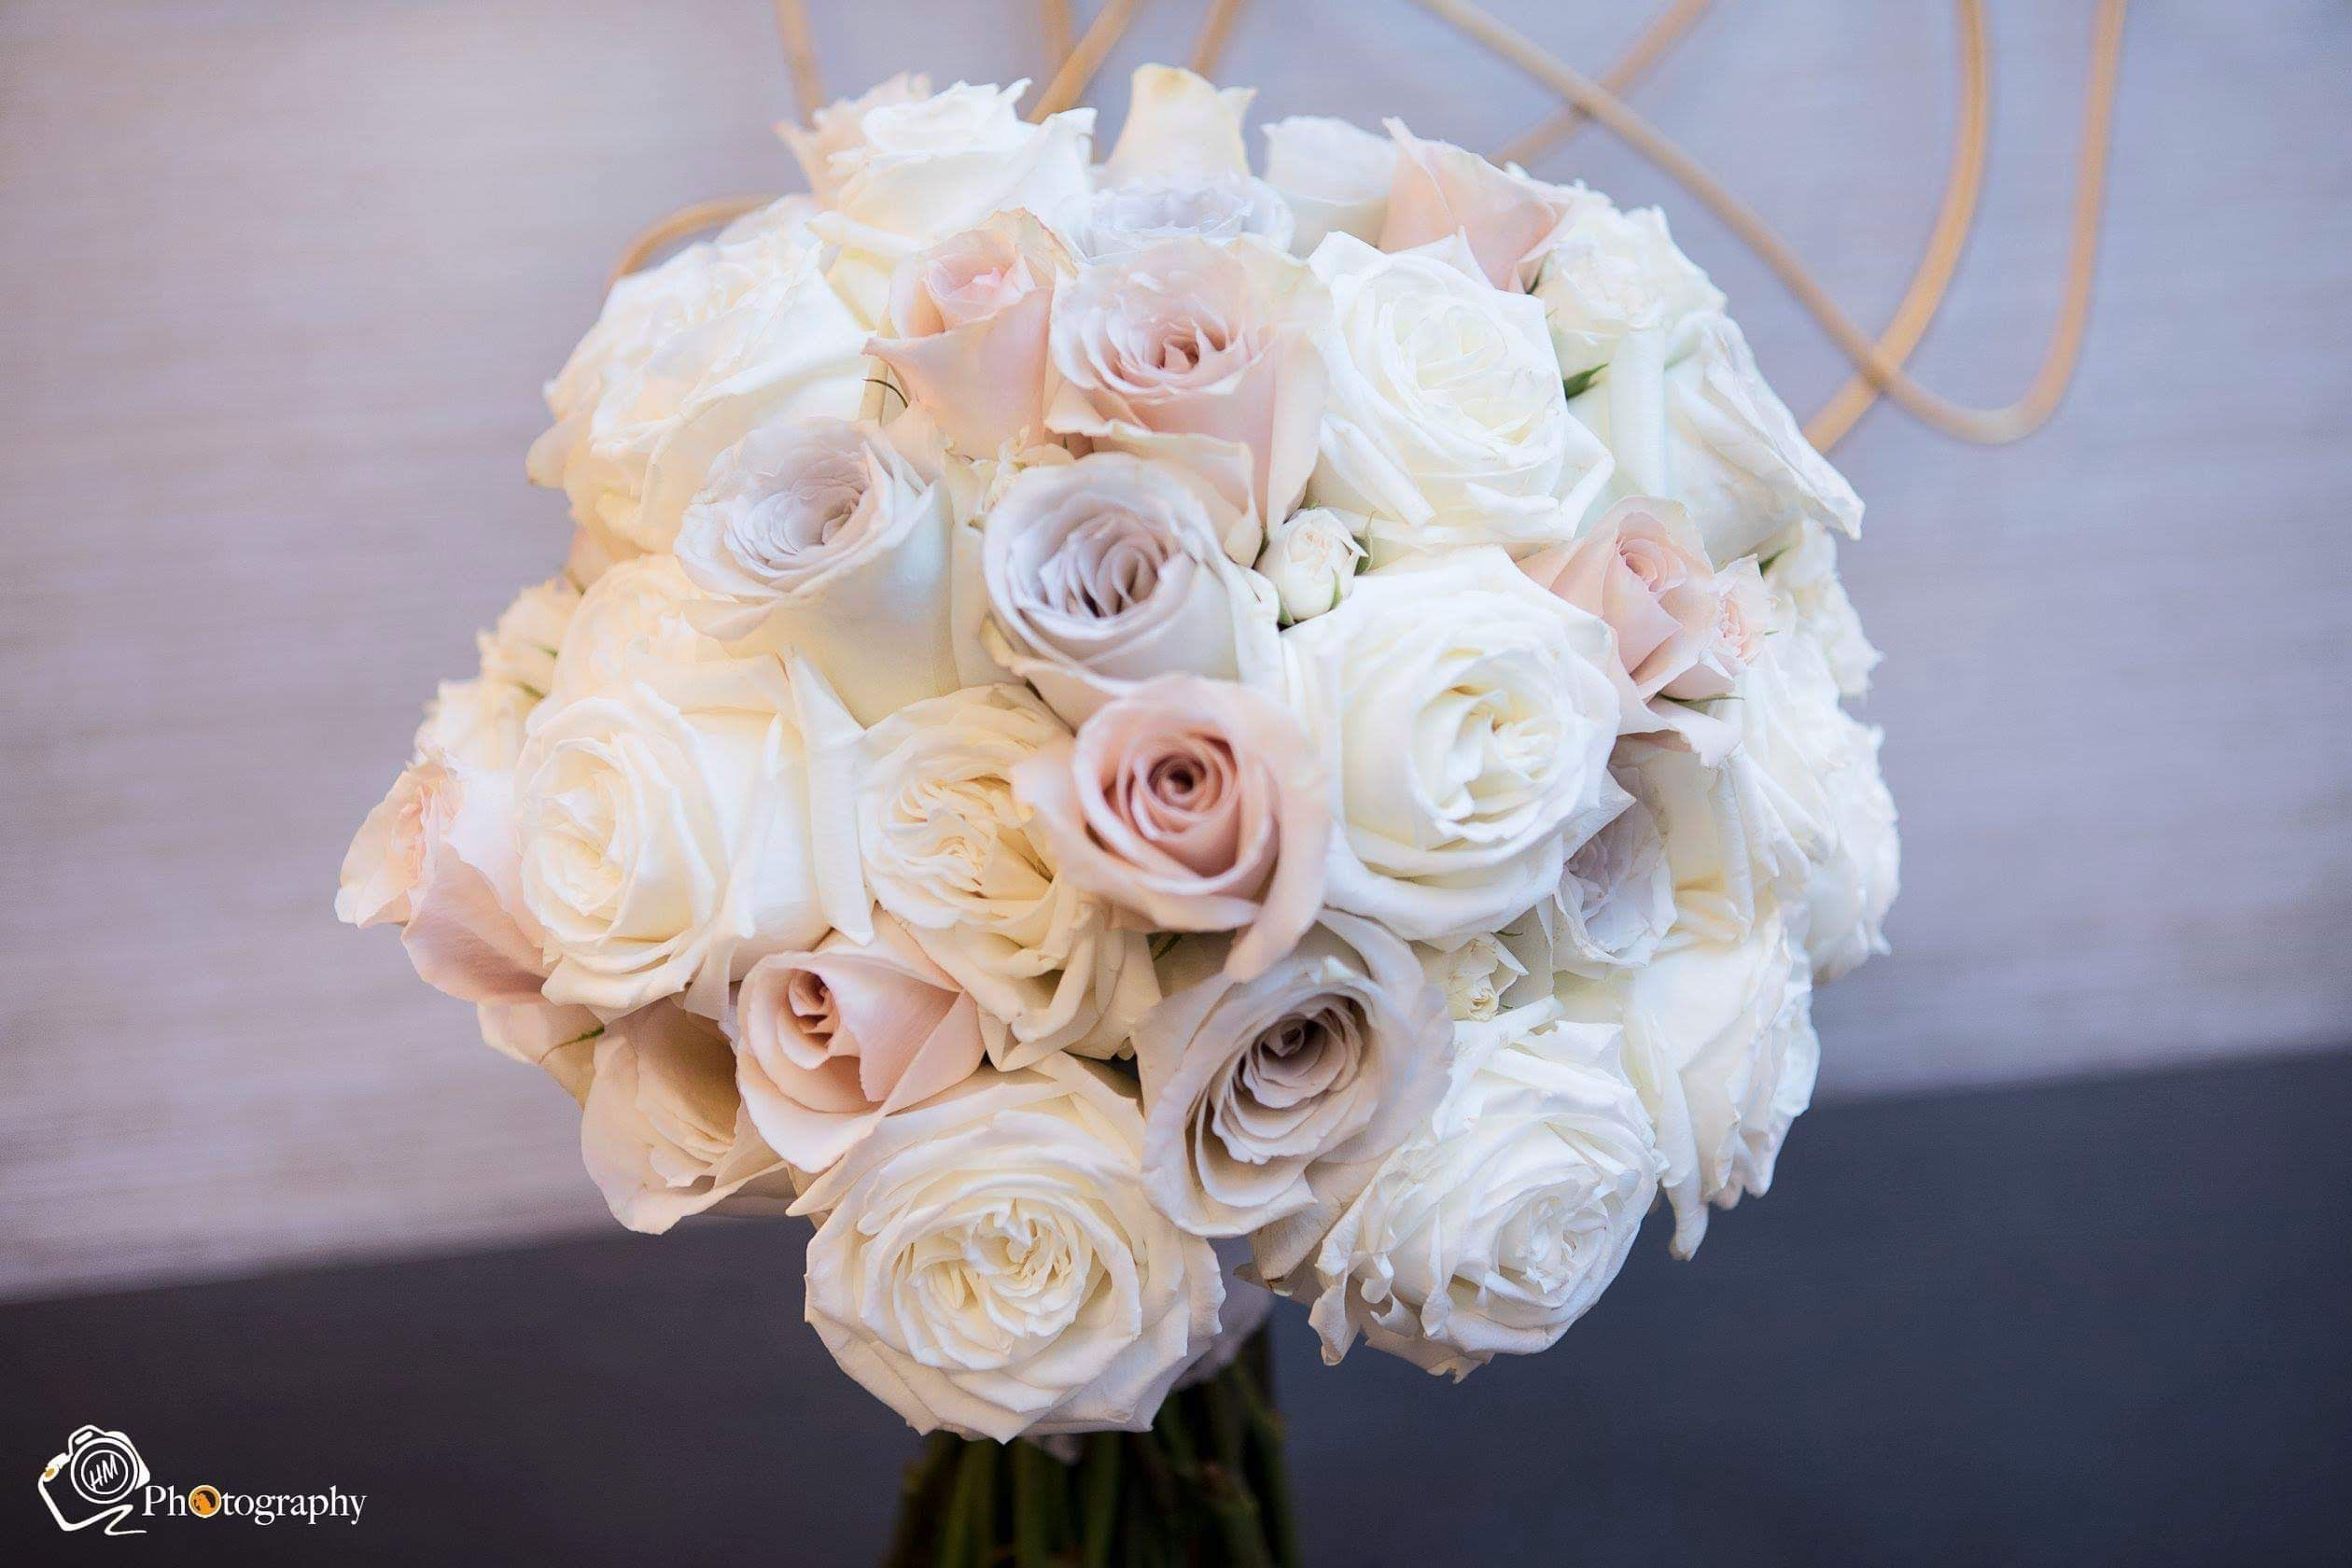 Bouquets made by yours truly wedding events bouquet event